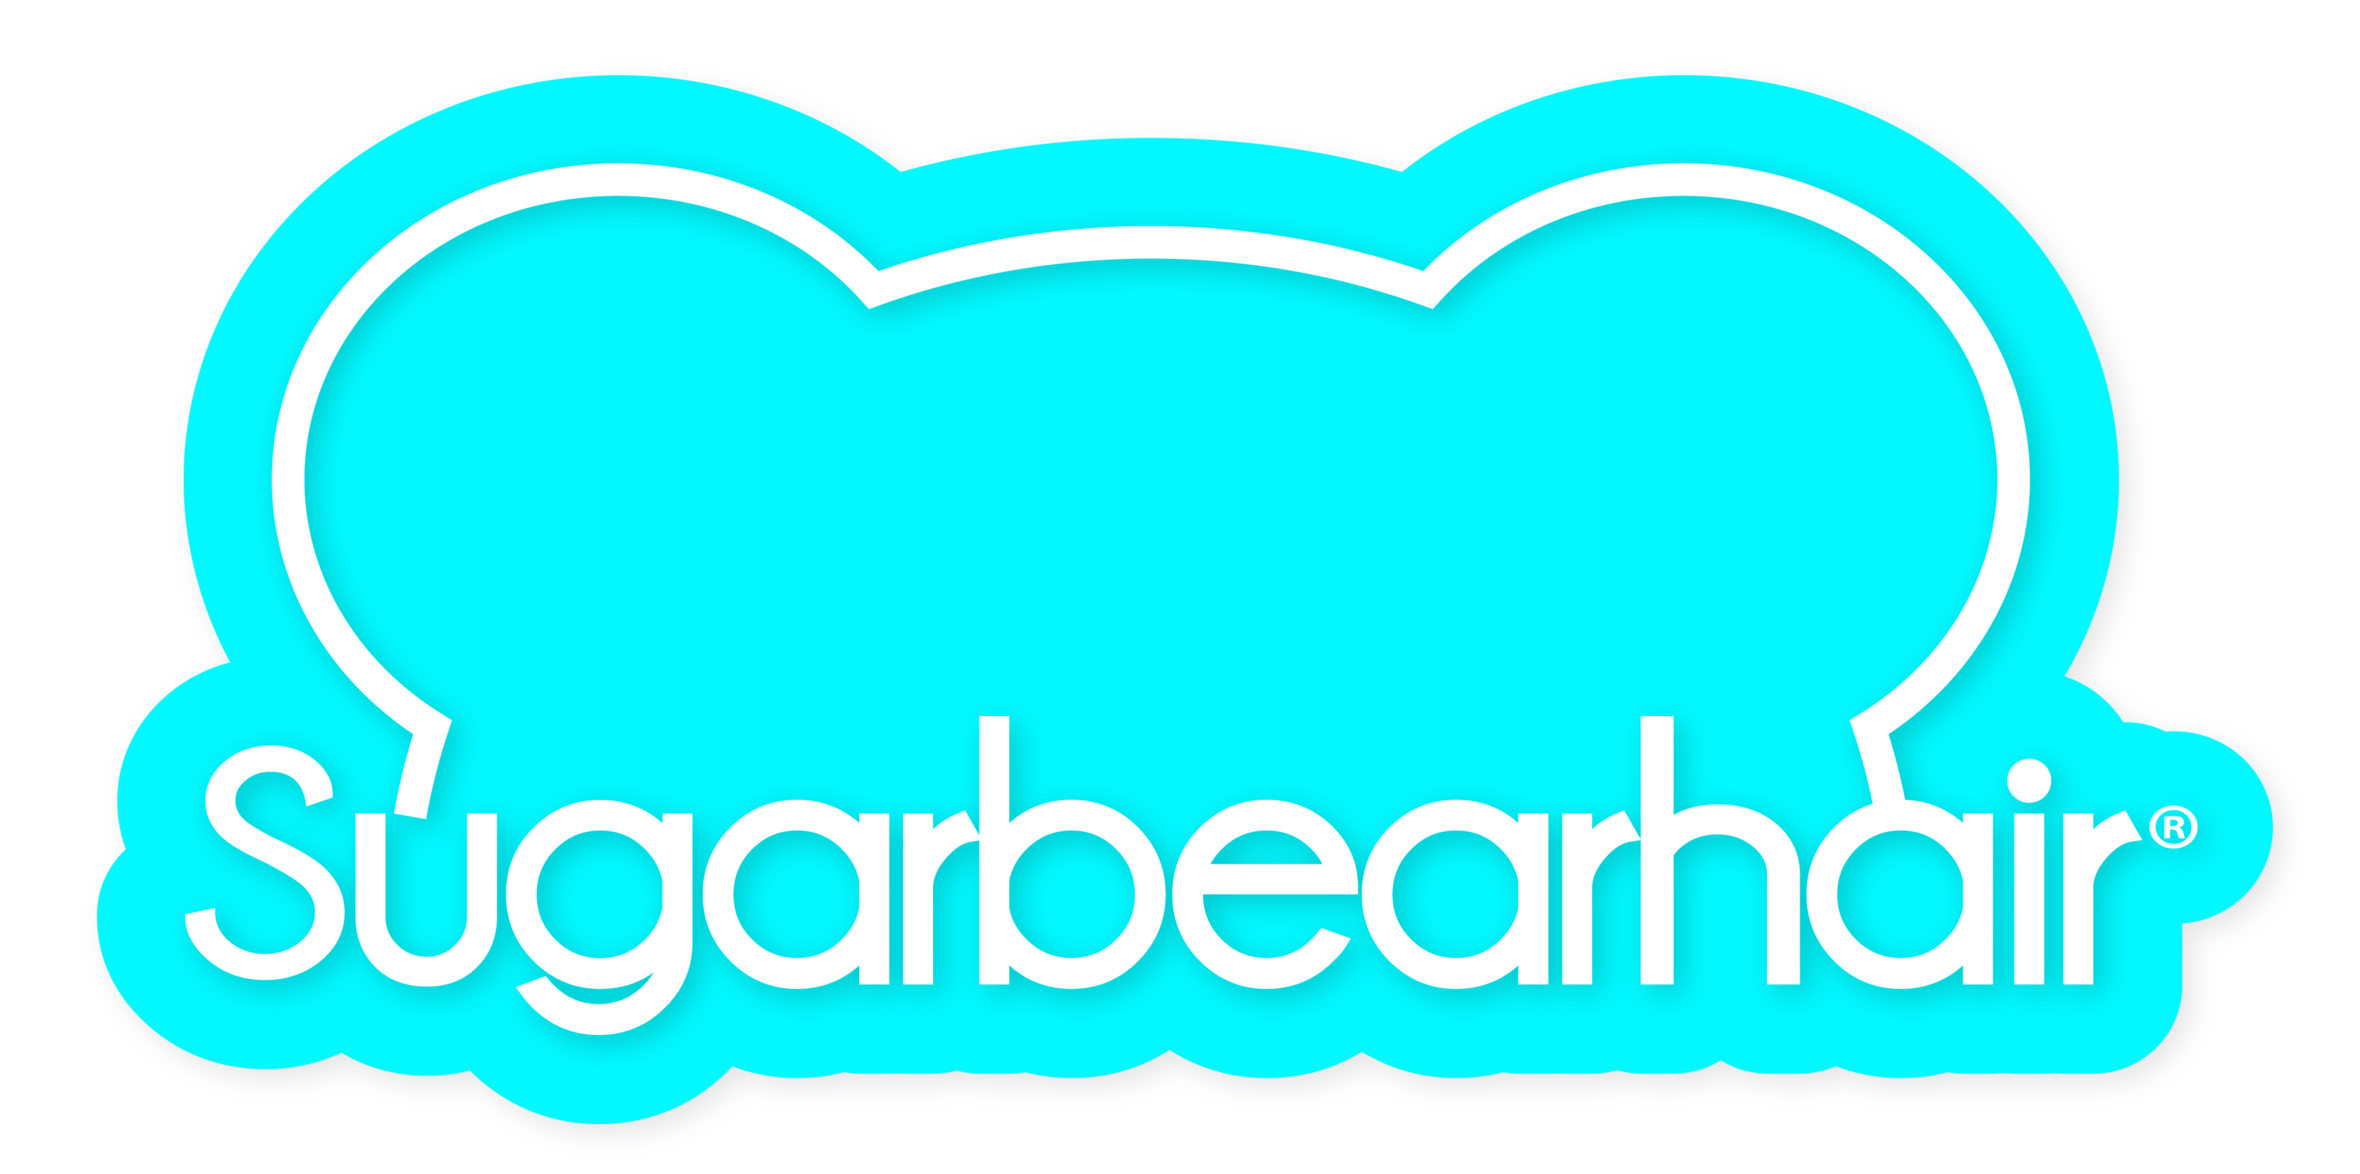 Sugar Bear Hair coupon code